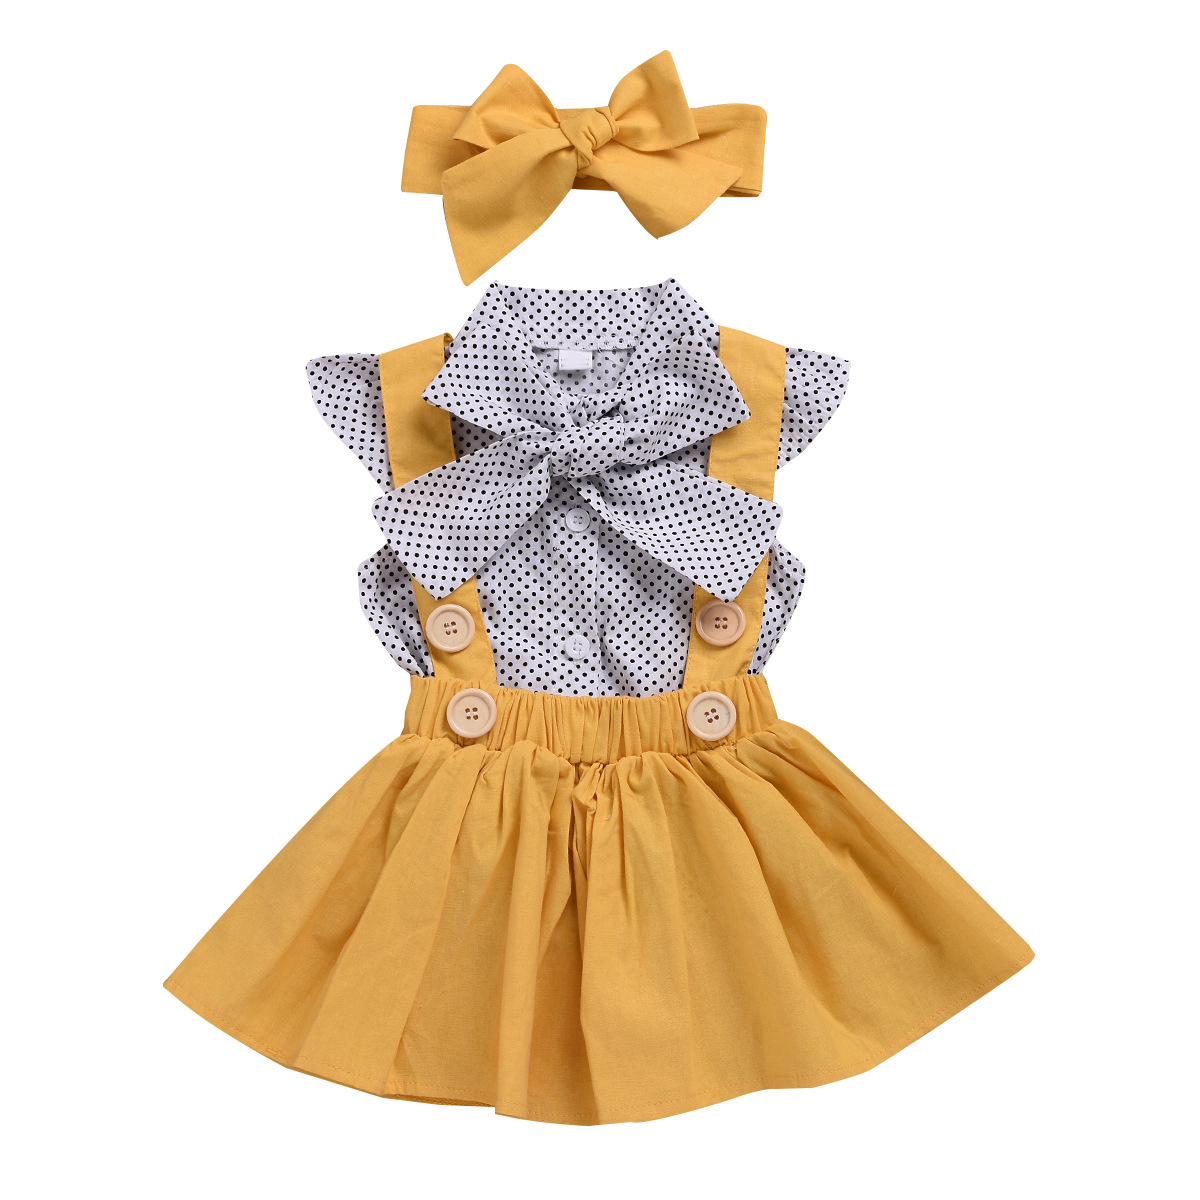 HTB1mvo3d.KF3KVjSZFEq6xExFXaf - Humor Bear Baby Girl Clothes Hot Summer Children's Girls' Clothing Sets Kids Bay clothes Toddler Chiffon bowknot coat+Pants 1-4Y